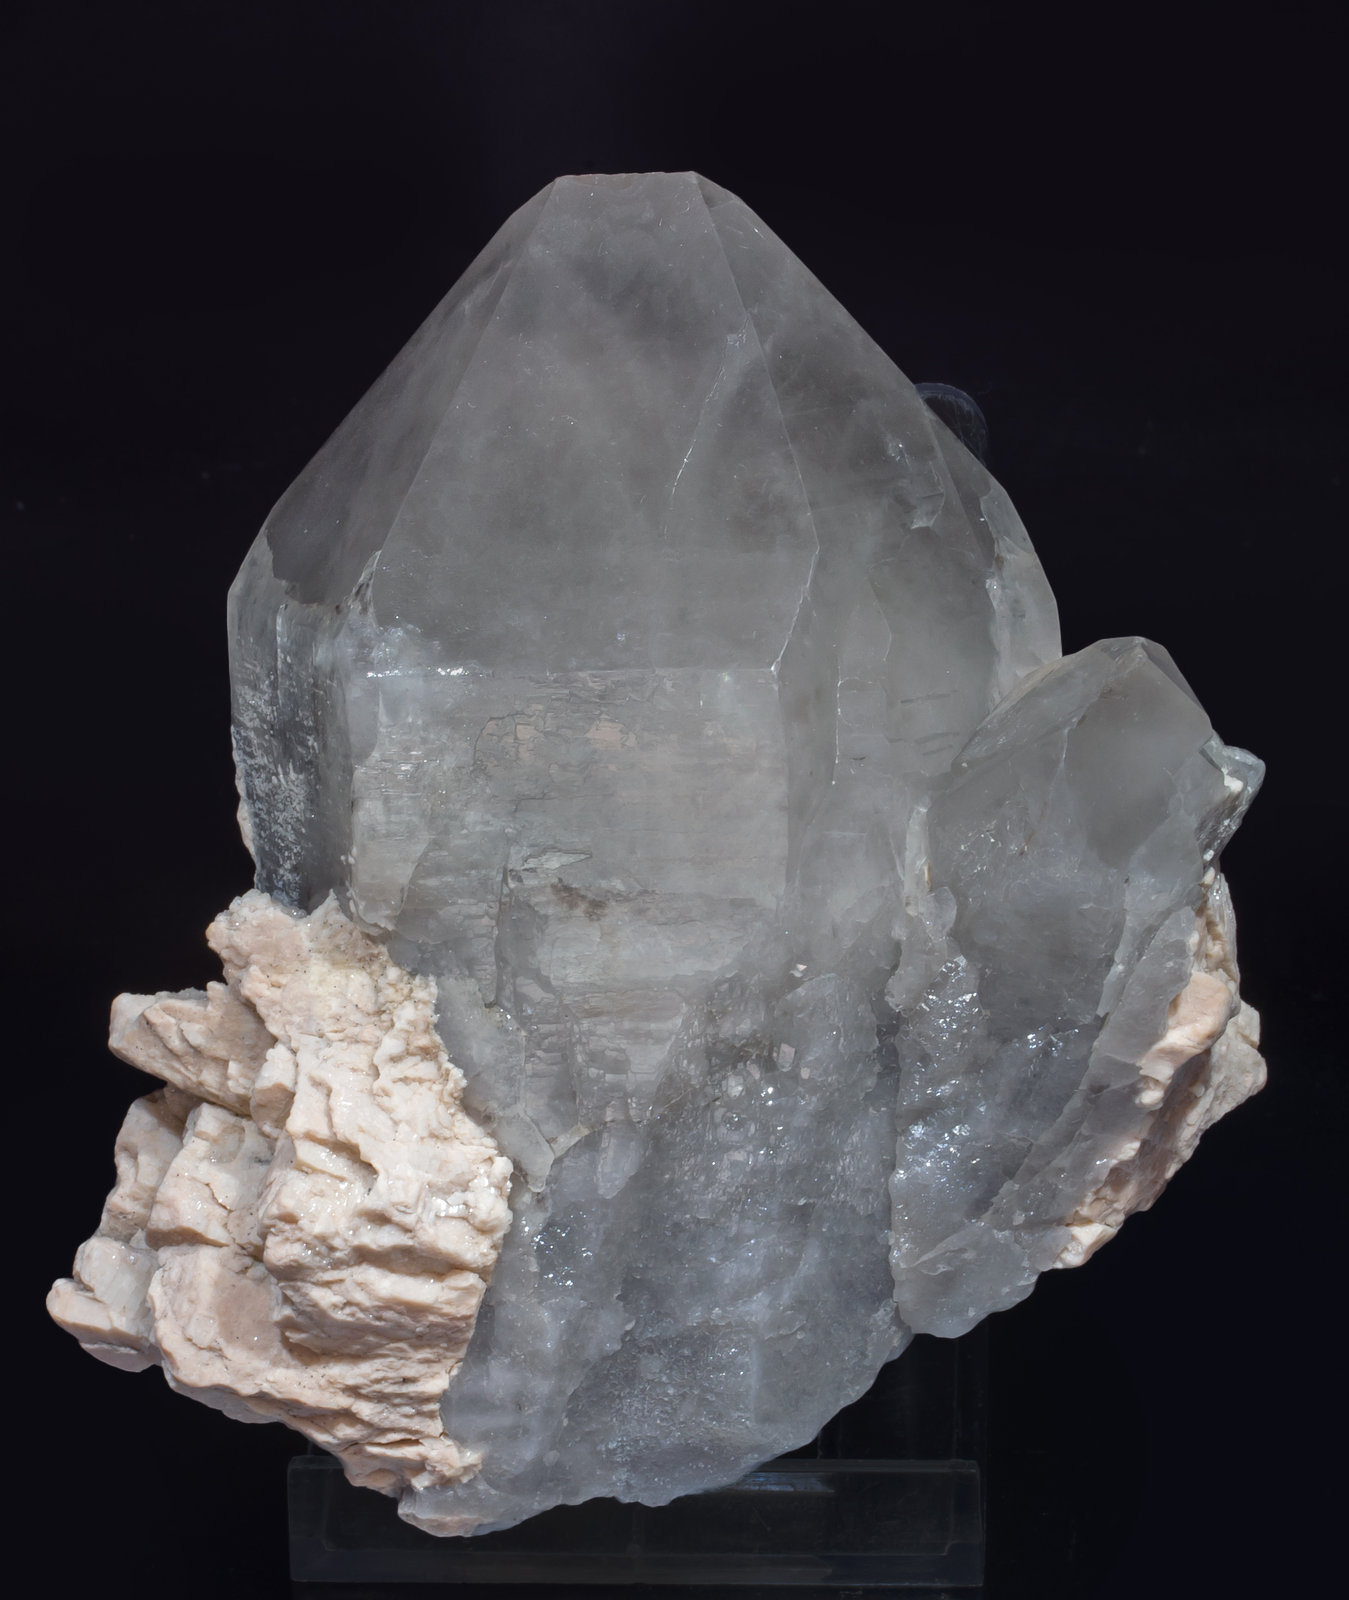 specimens/s_imagesAH6/Quartz-DF48AH6f.jpg